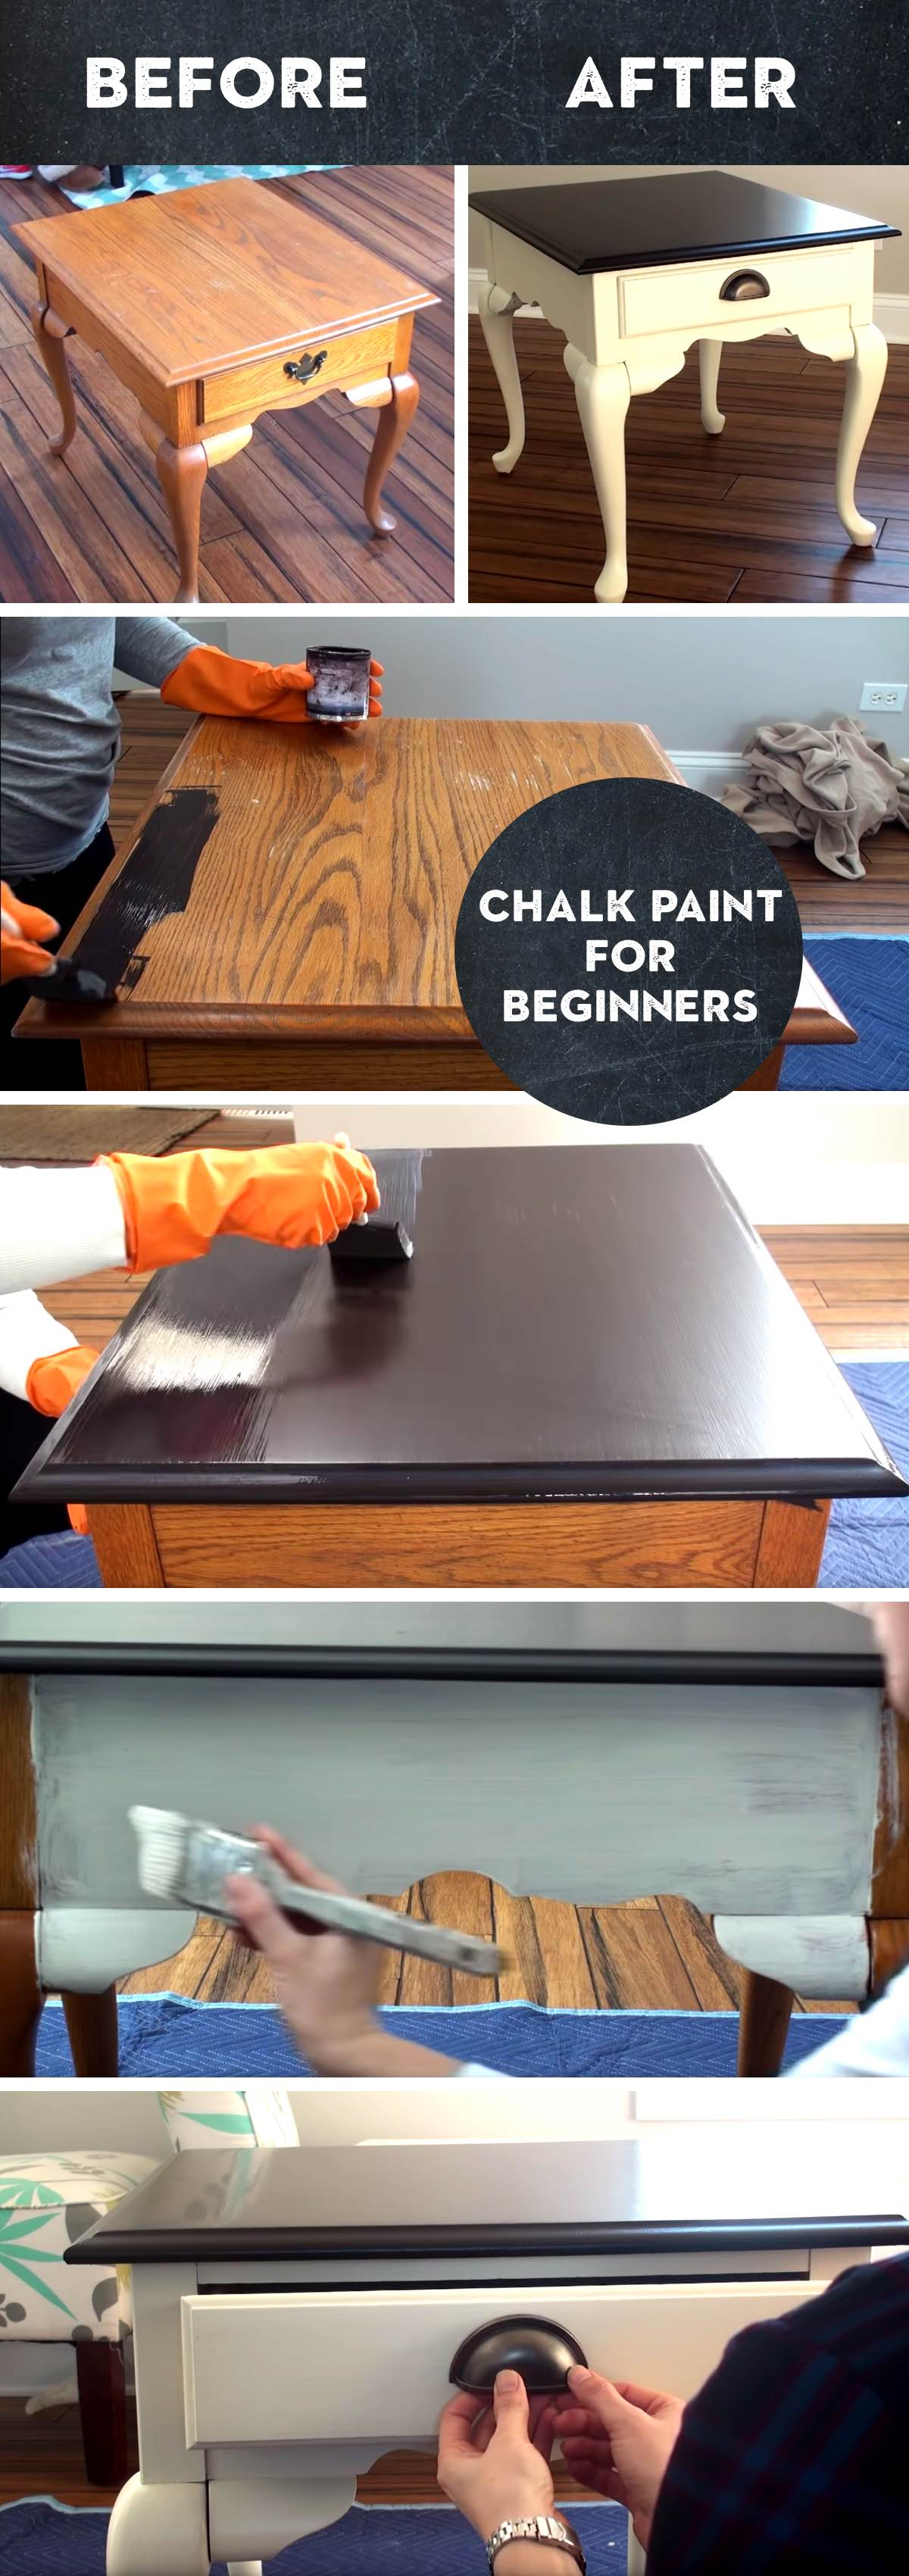 Chalk Paint for Beginners